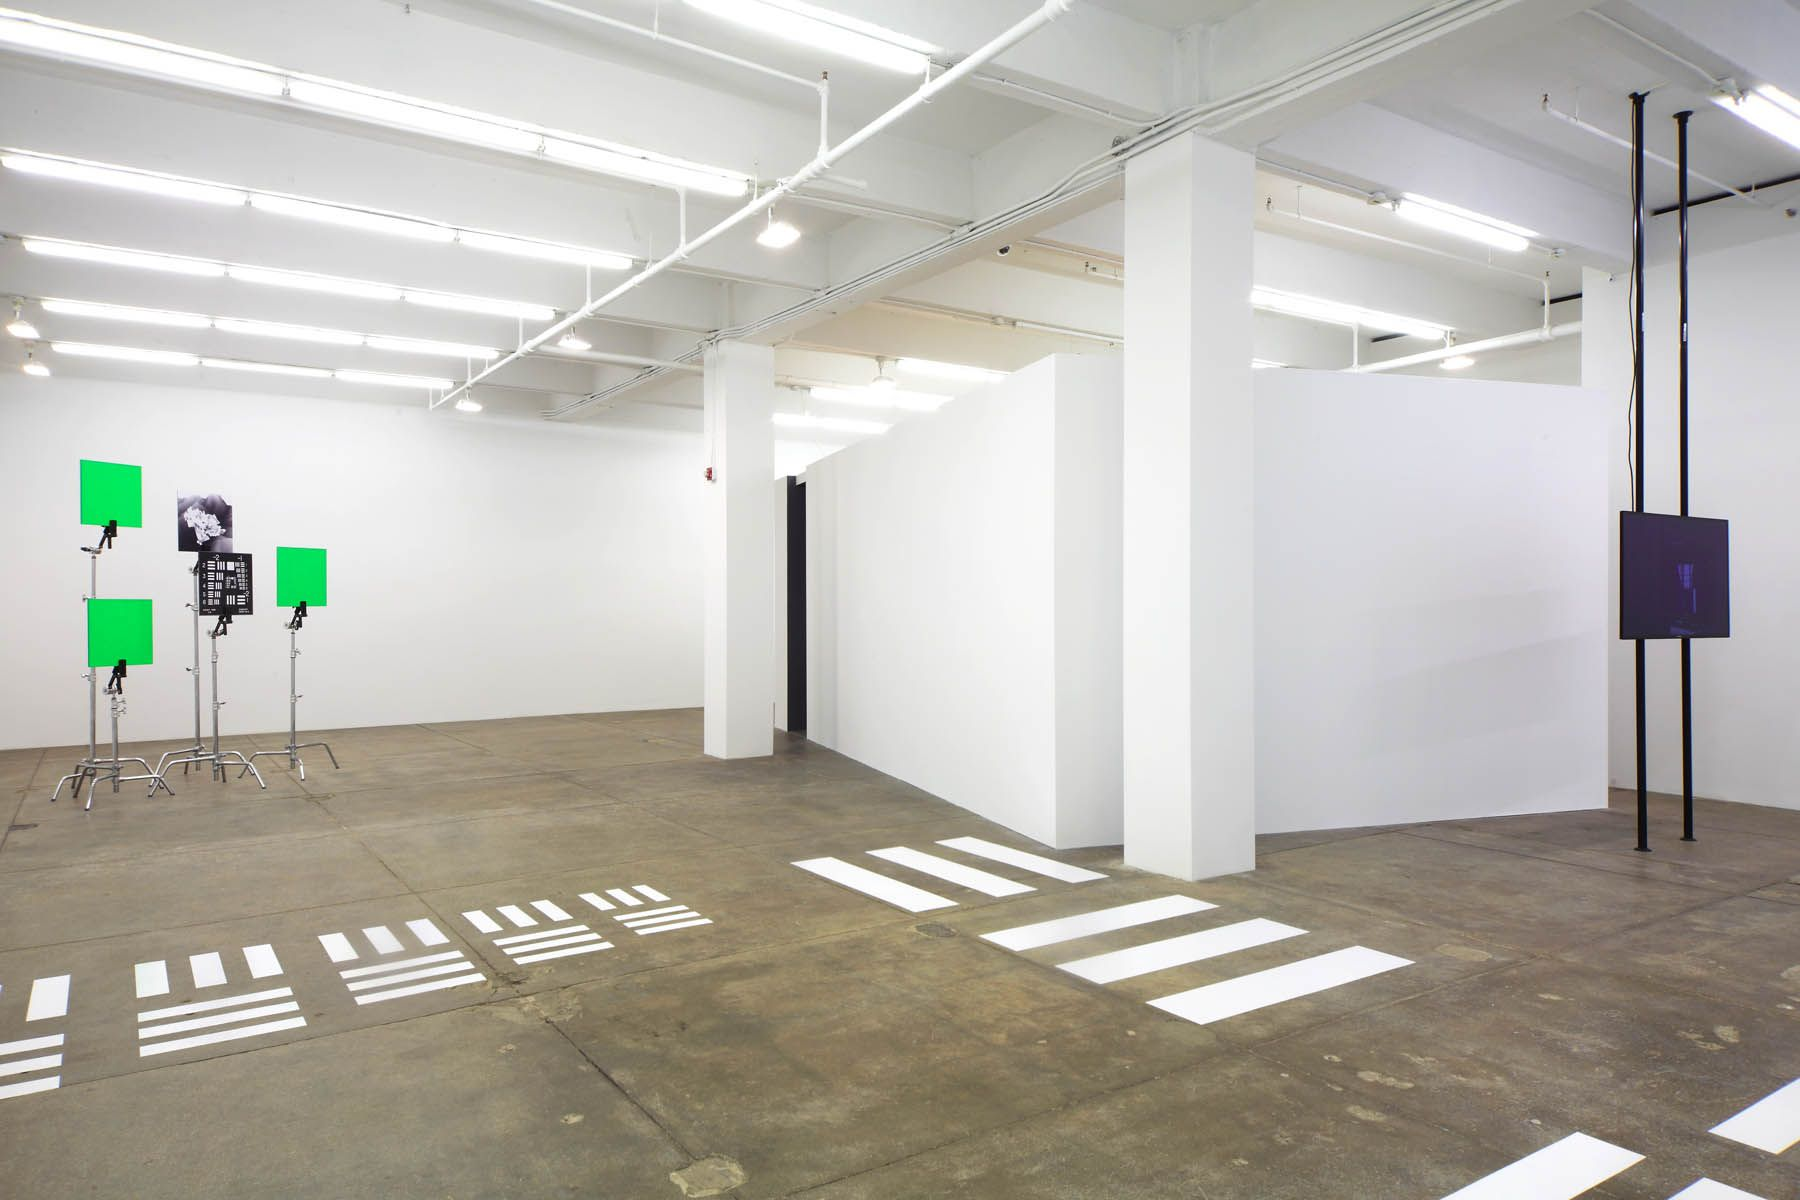 How Not to Be Seen: A Fucking Didactic Educational Installation, Andrew Kreps Gallery, New YorkJuly 2 - August 15, 2014